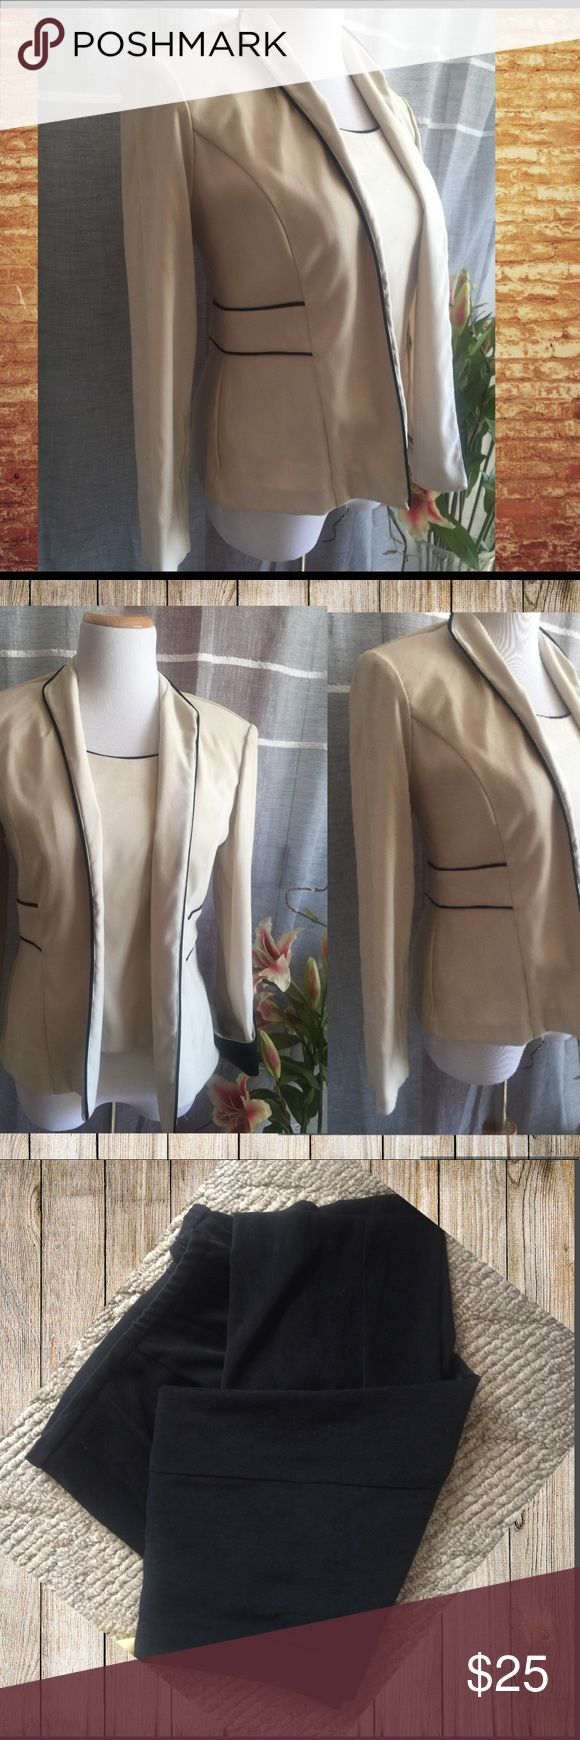 Ladies three piece vest, jacket and pants suit Jessica Howard 3 piece suit. It's a cream color with black trim.  Please note the vest reflects a shadow around collar. I'm not thinking it's stained but a reflection of the back trim. As other pictures show. But I'm selling making you aware and price reflects it Jessica Howard Skirts Skirt Sets